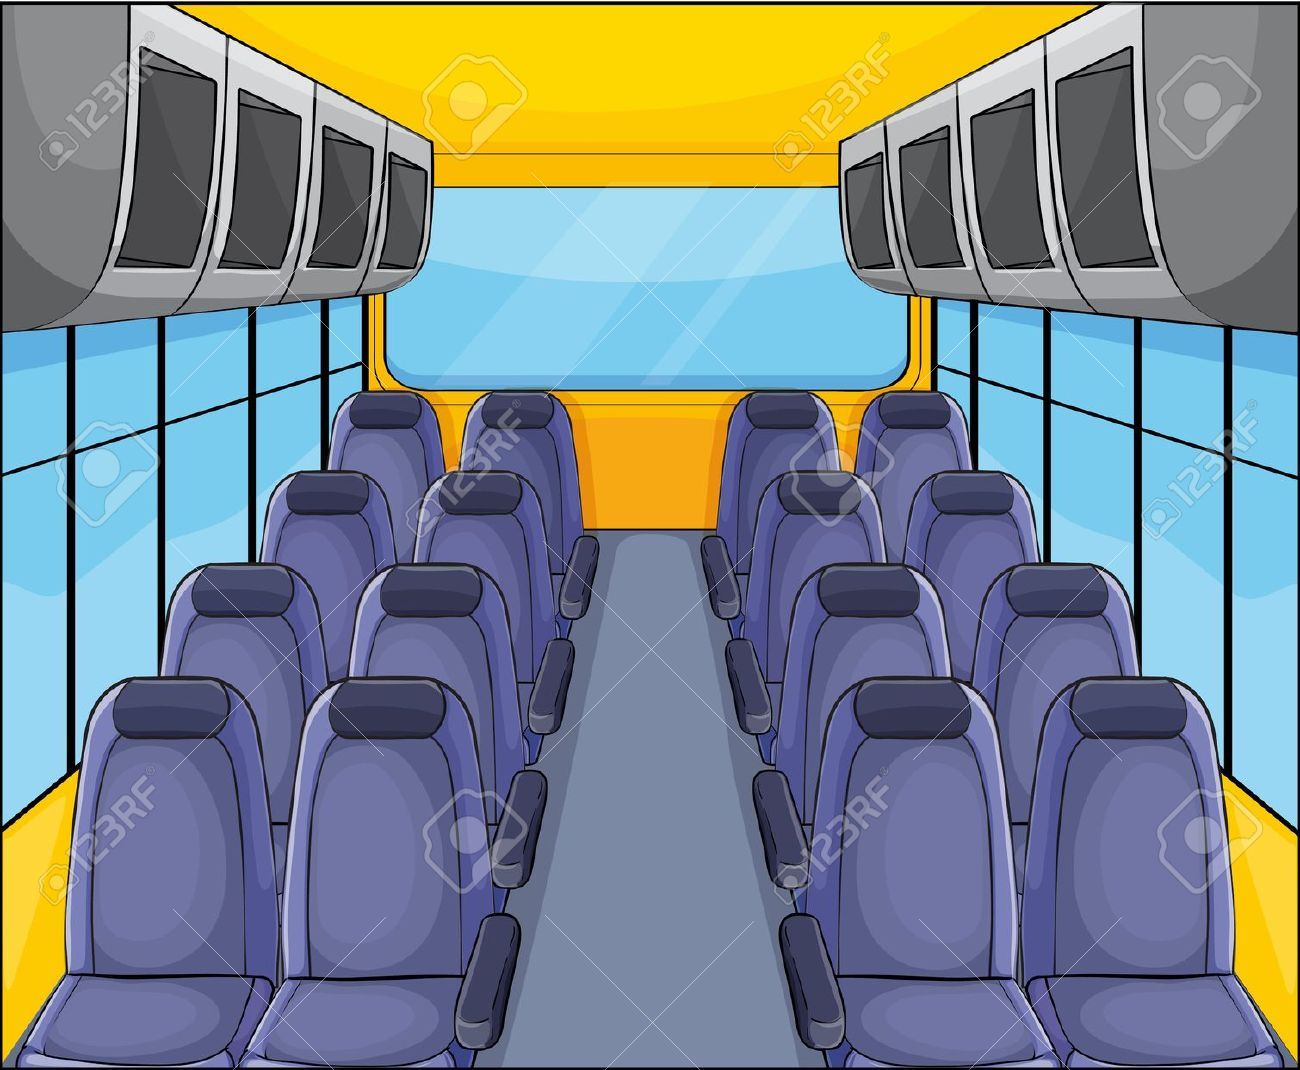 Inside school bus clipart.